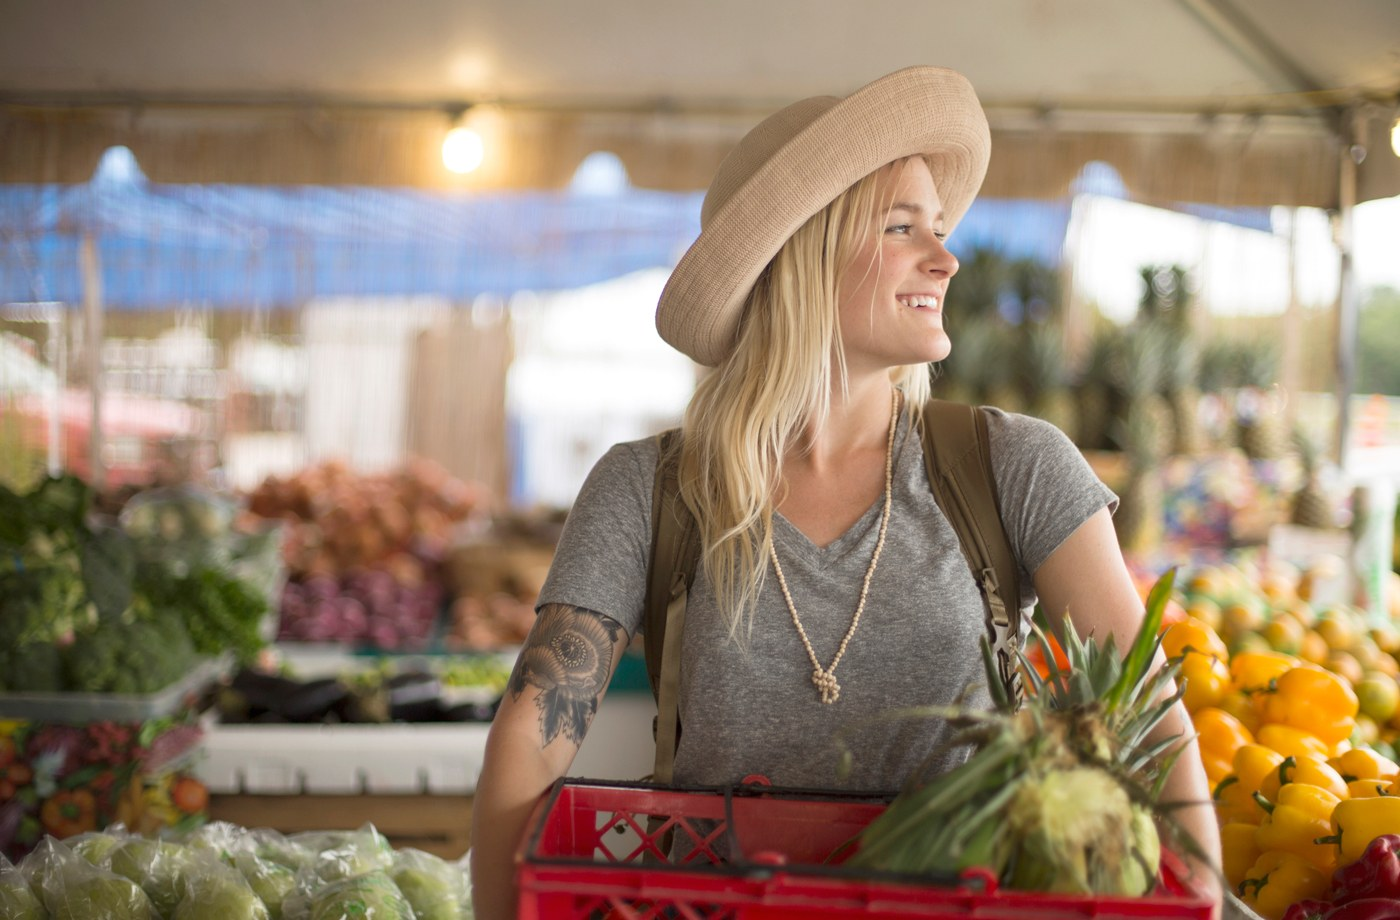 Thumbnail for A dietitian shares her secrets to getting the best produce at the farmers' market